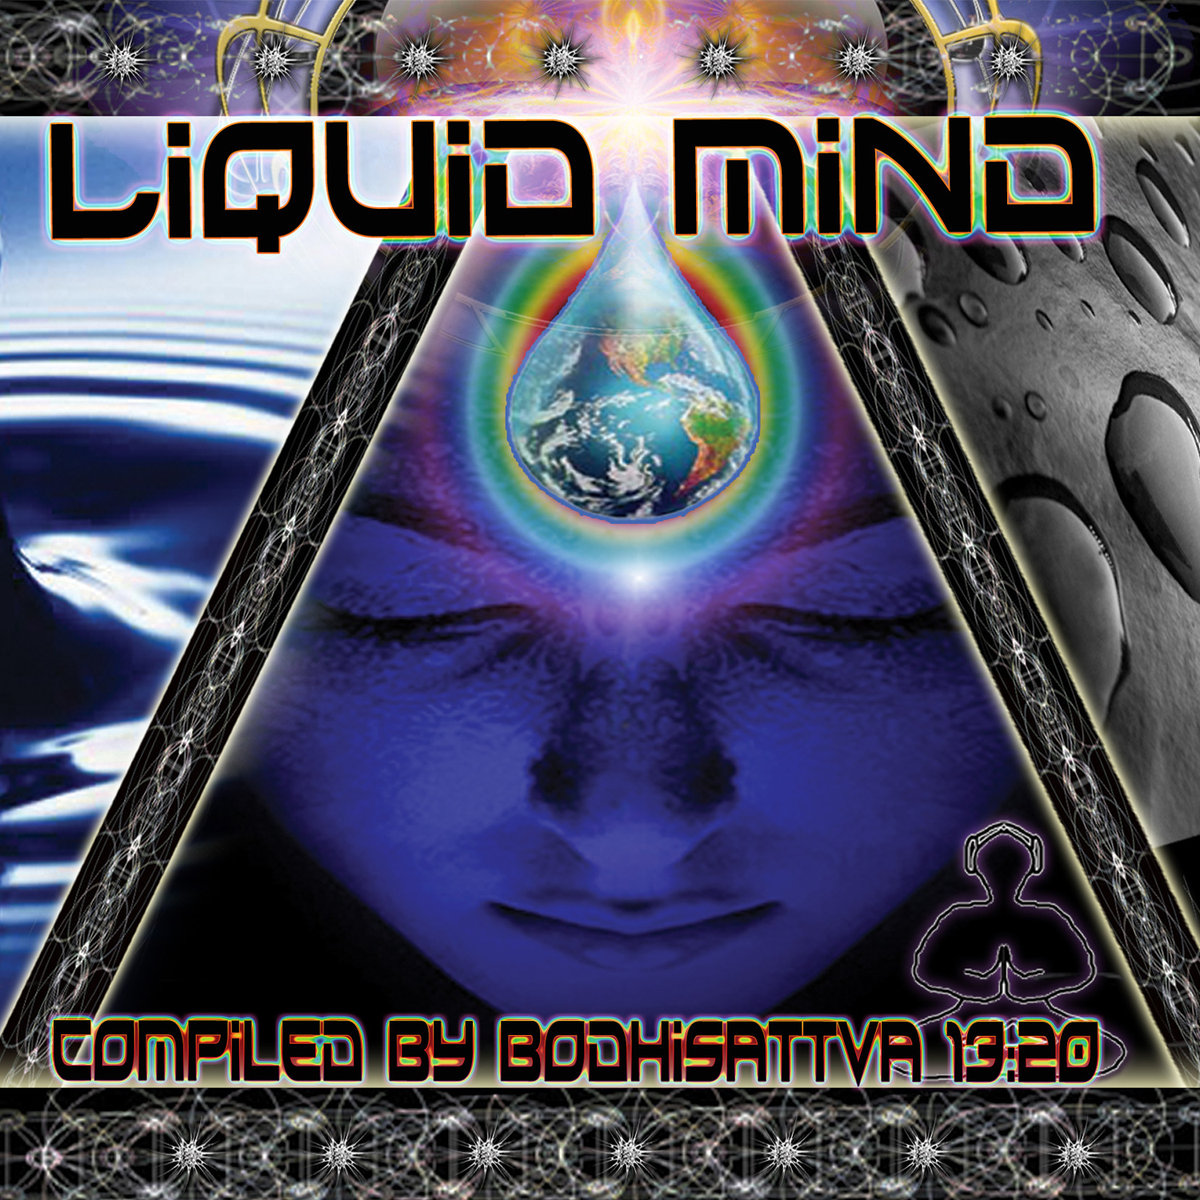 Cilium (Bodhi 13:20) - Gone Fission @ 'Various Artists - Liquid Mind (Compiled by Bodhisattva 13:20)' album (electronic, and)